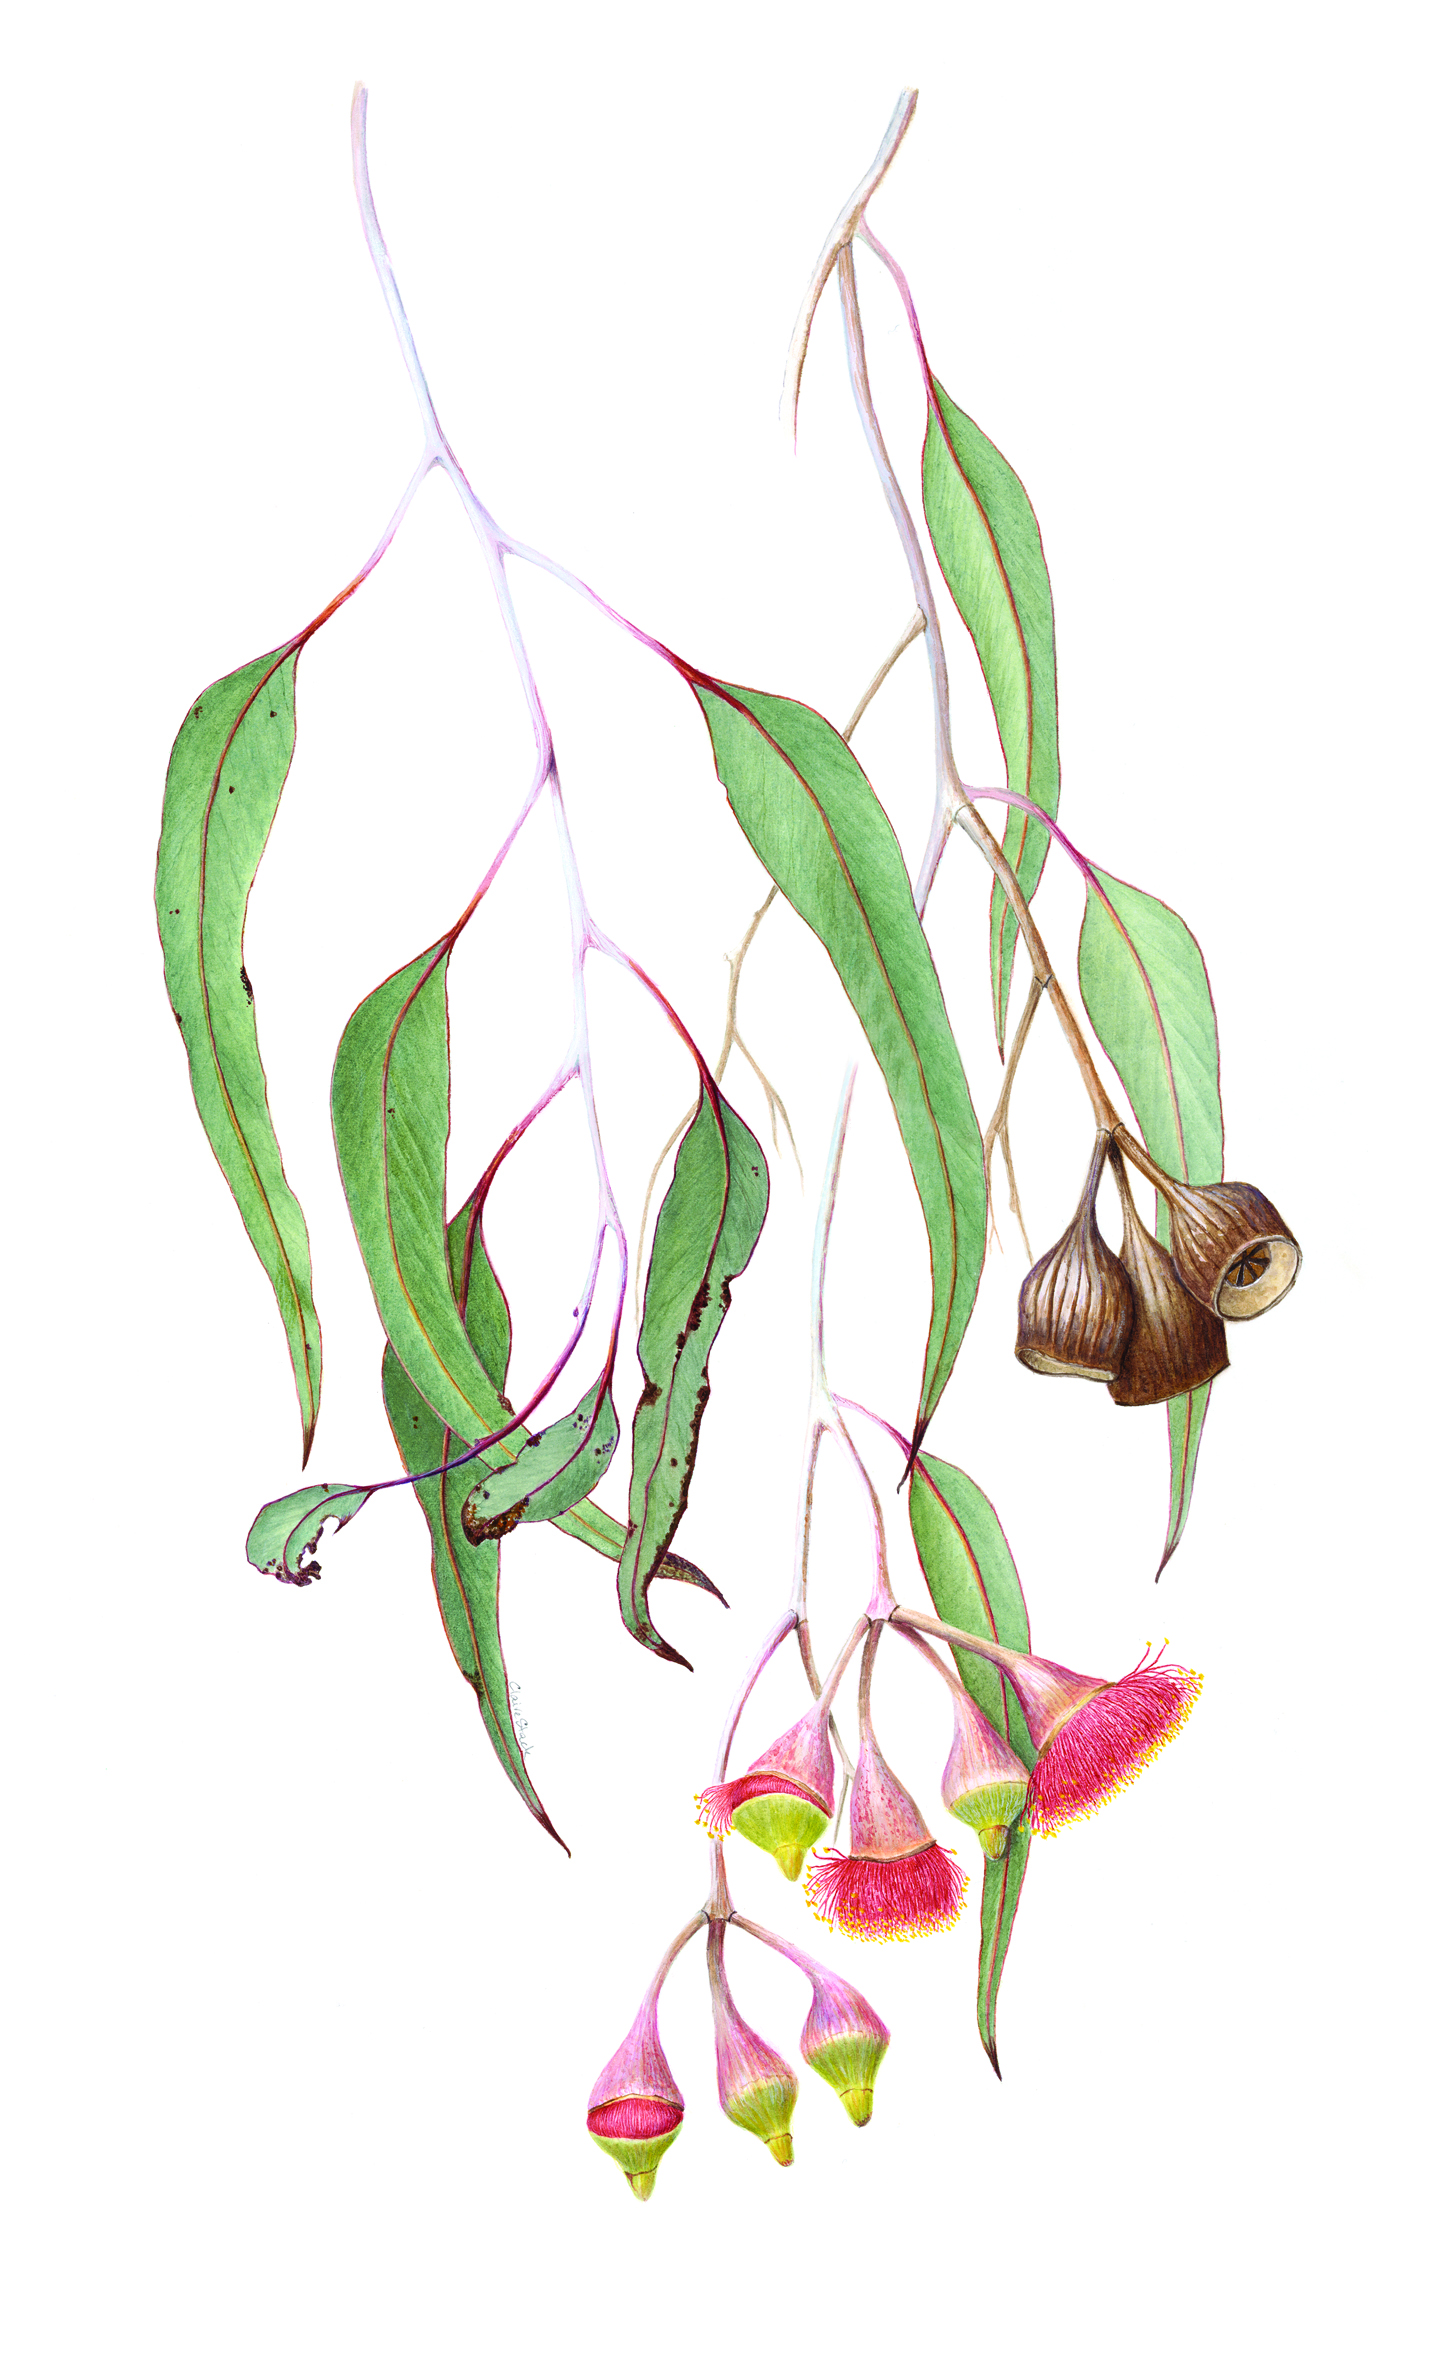 Watercolour of Eucalyptus caesia